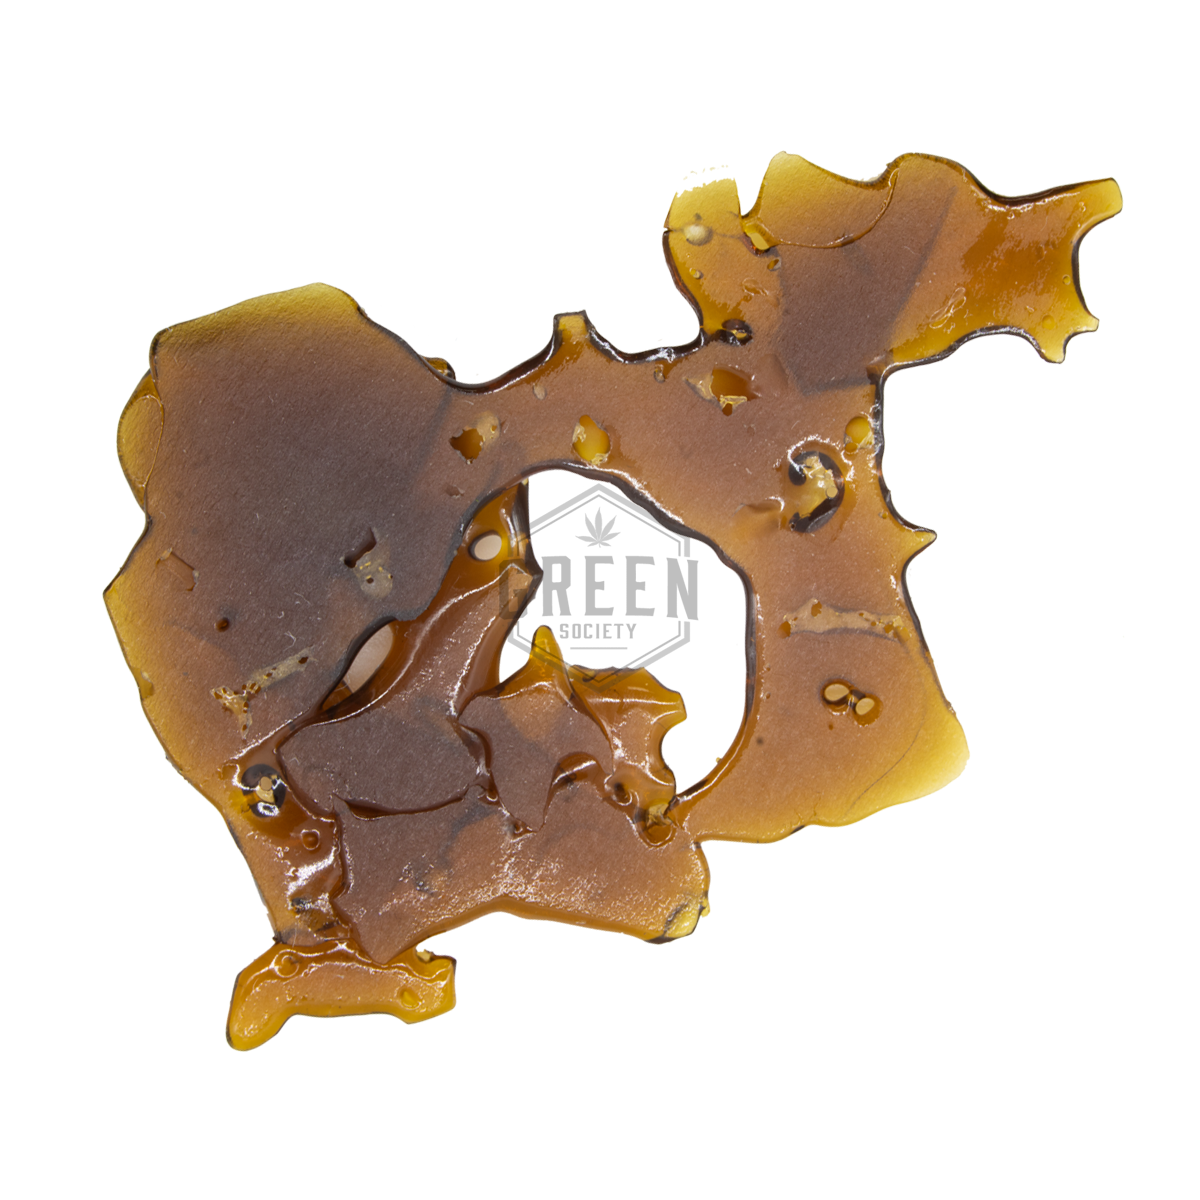 Pre-98 Bubba Kush Shatter 2G Pack by Green Society - Image © 2018 Green Society. All Rights Reserved.